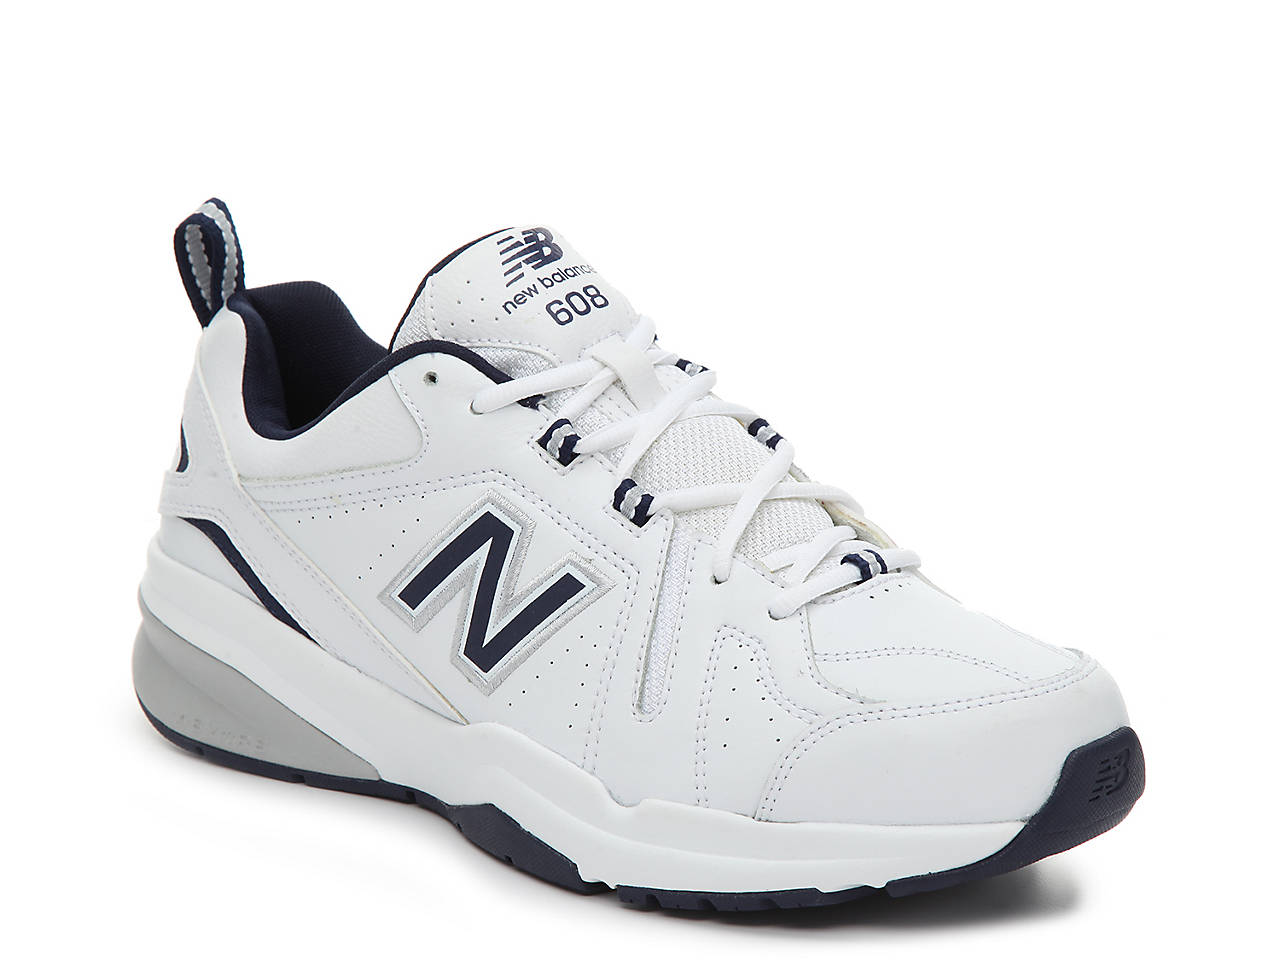 72459036016a1 New Balance 608 V5 Training Shoe - Men's Men's Shoes | DSW